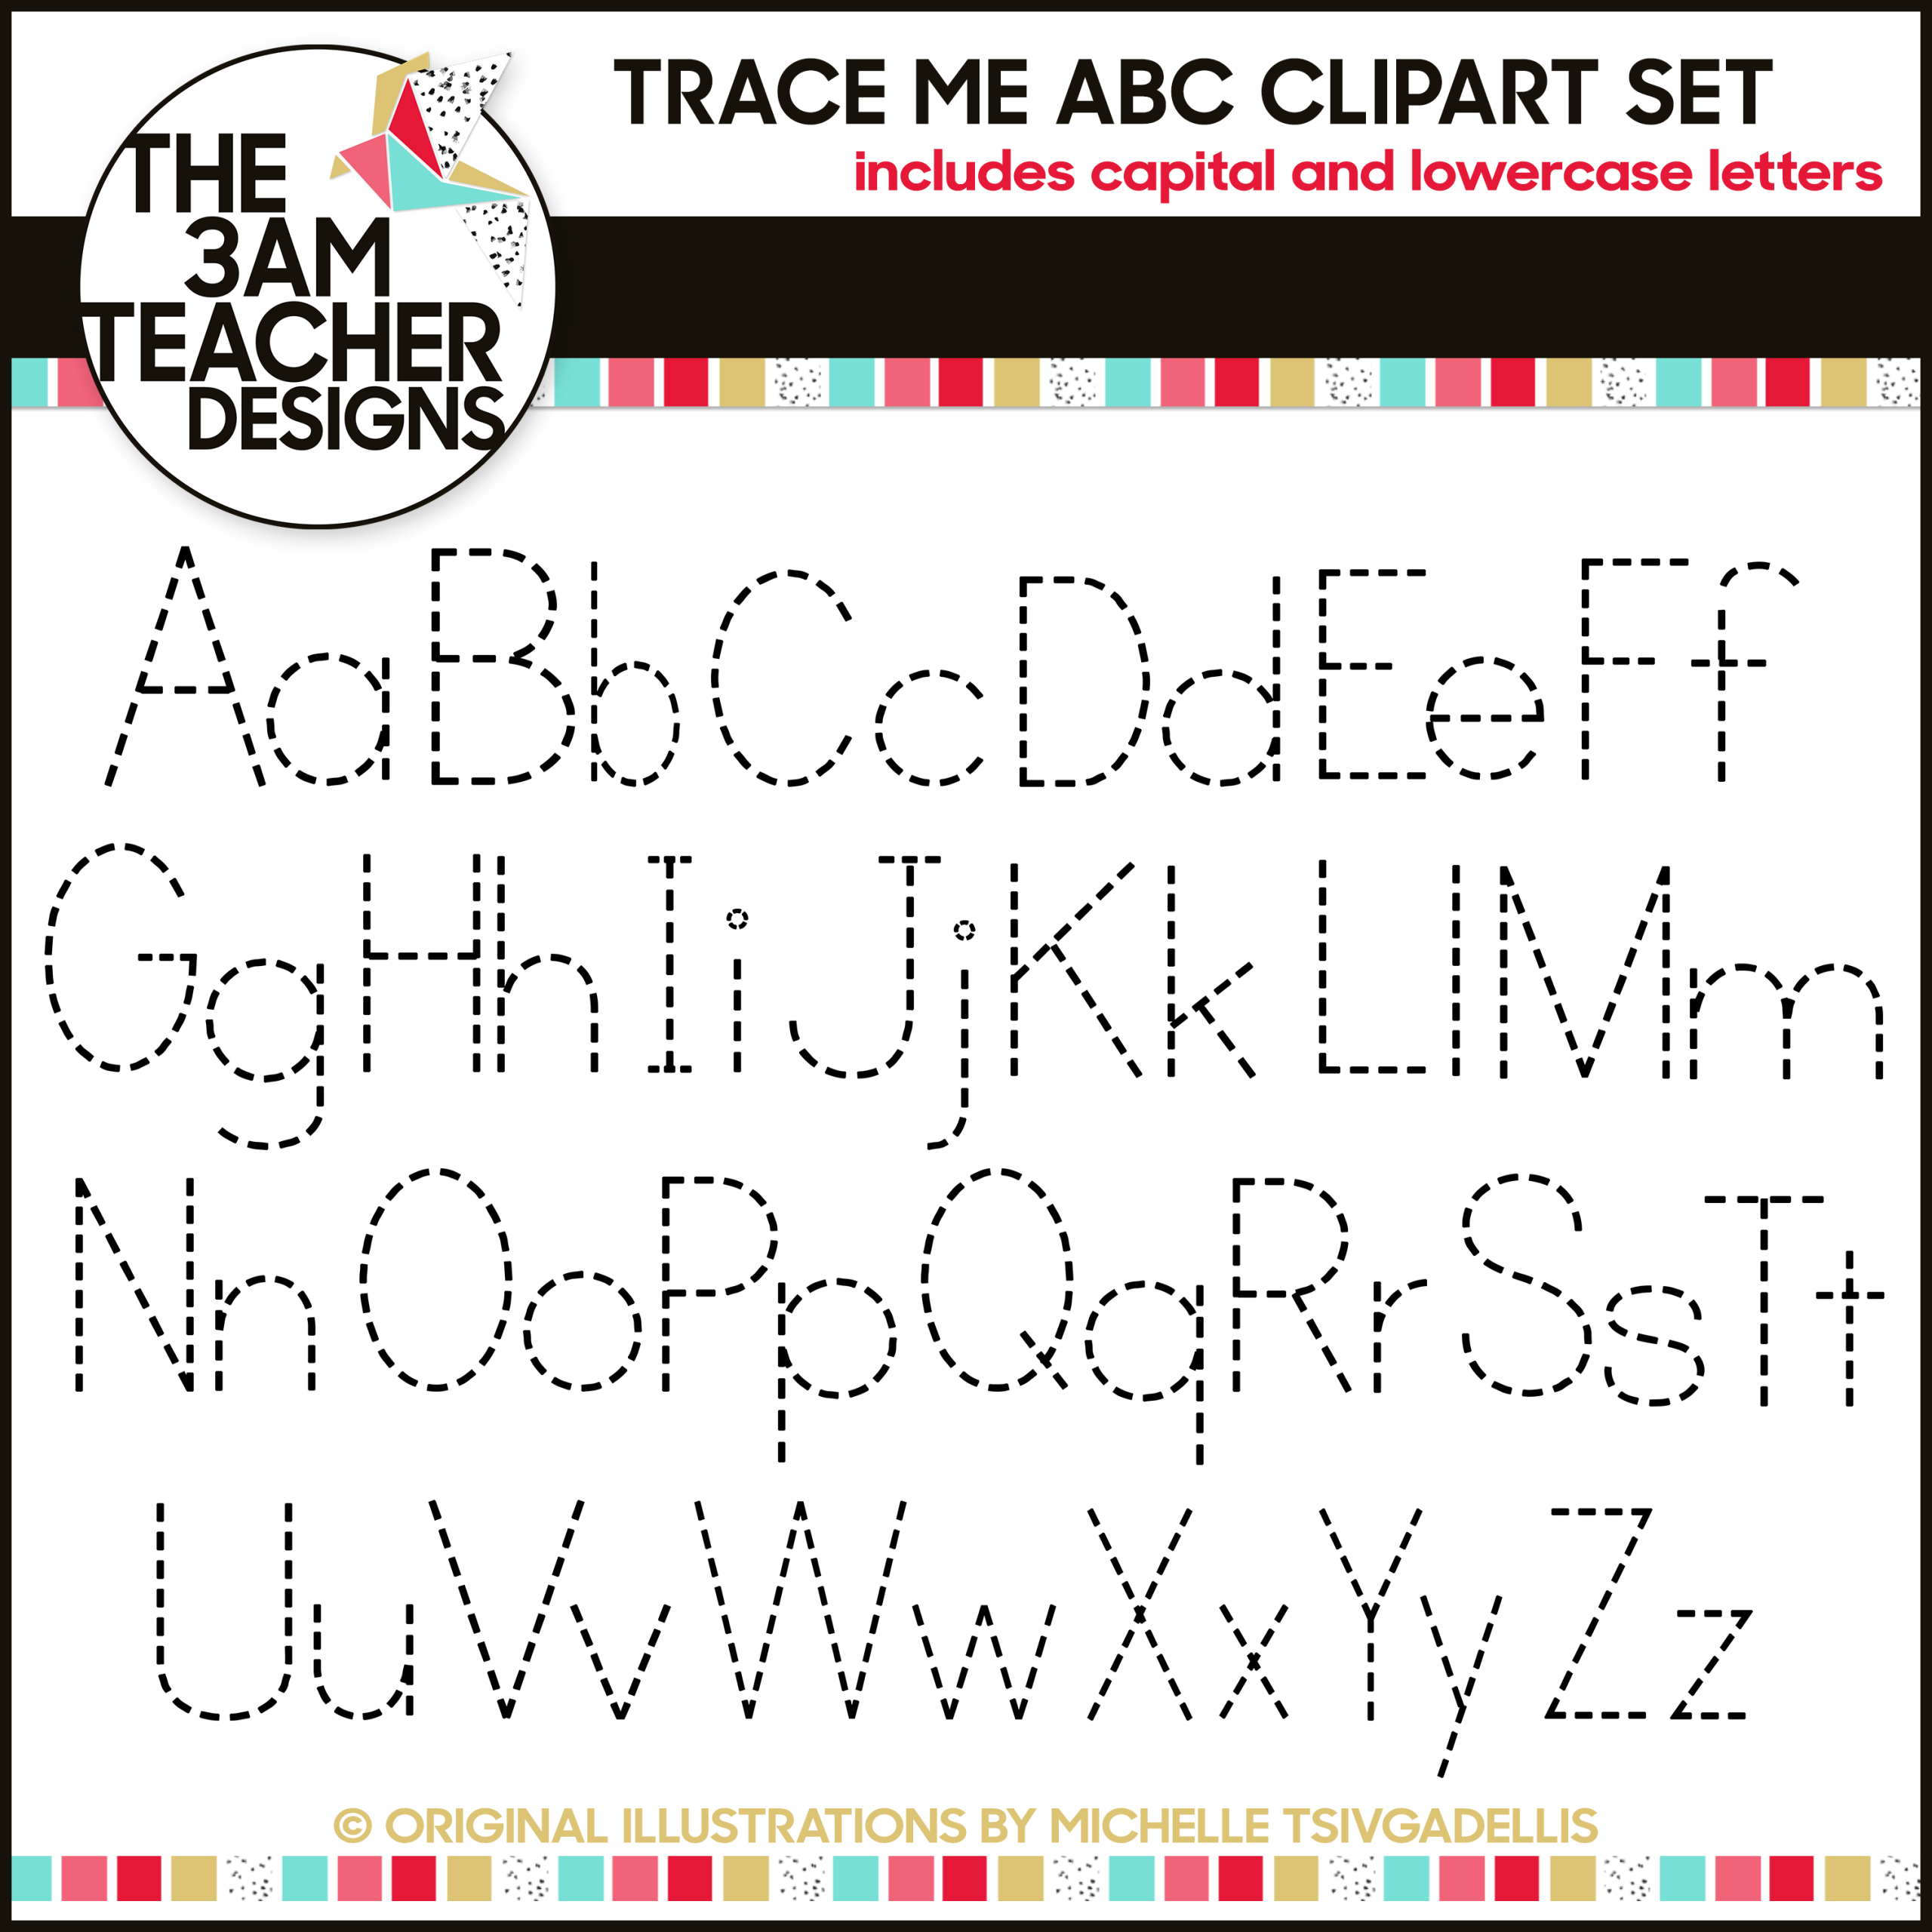 Alphabet clipart a z image library download Alphabet clipart a z - ClipartFest image library download